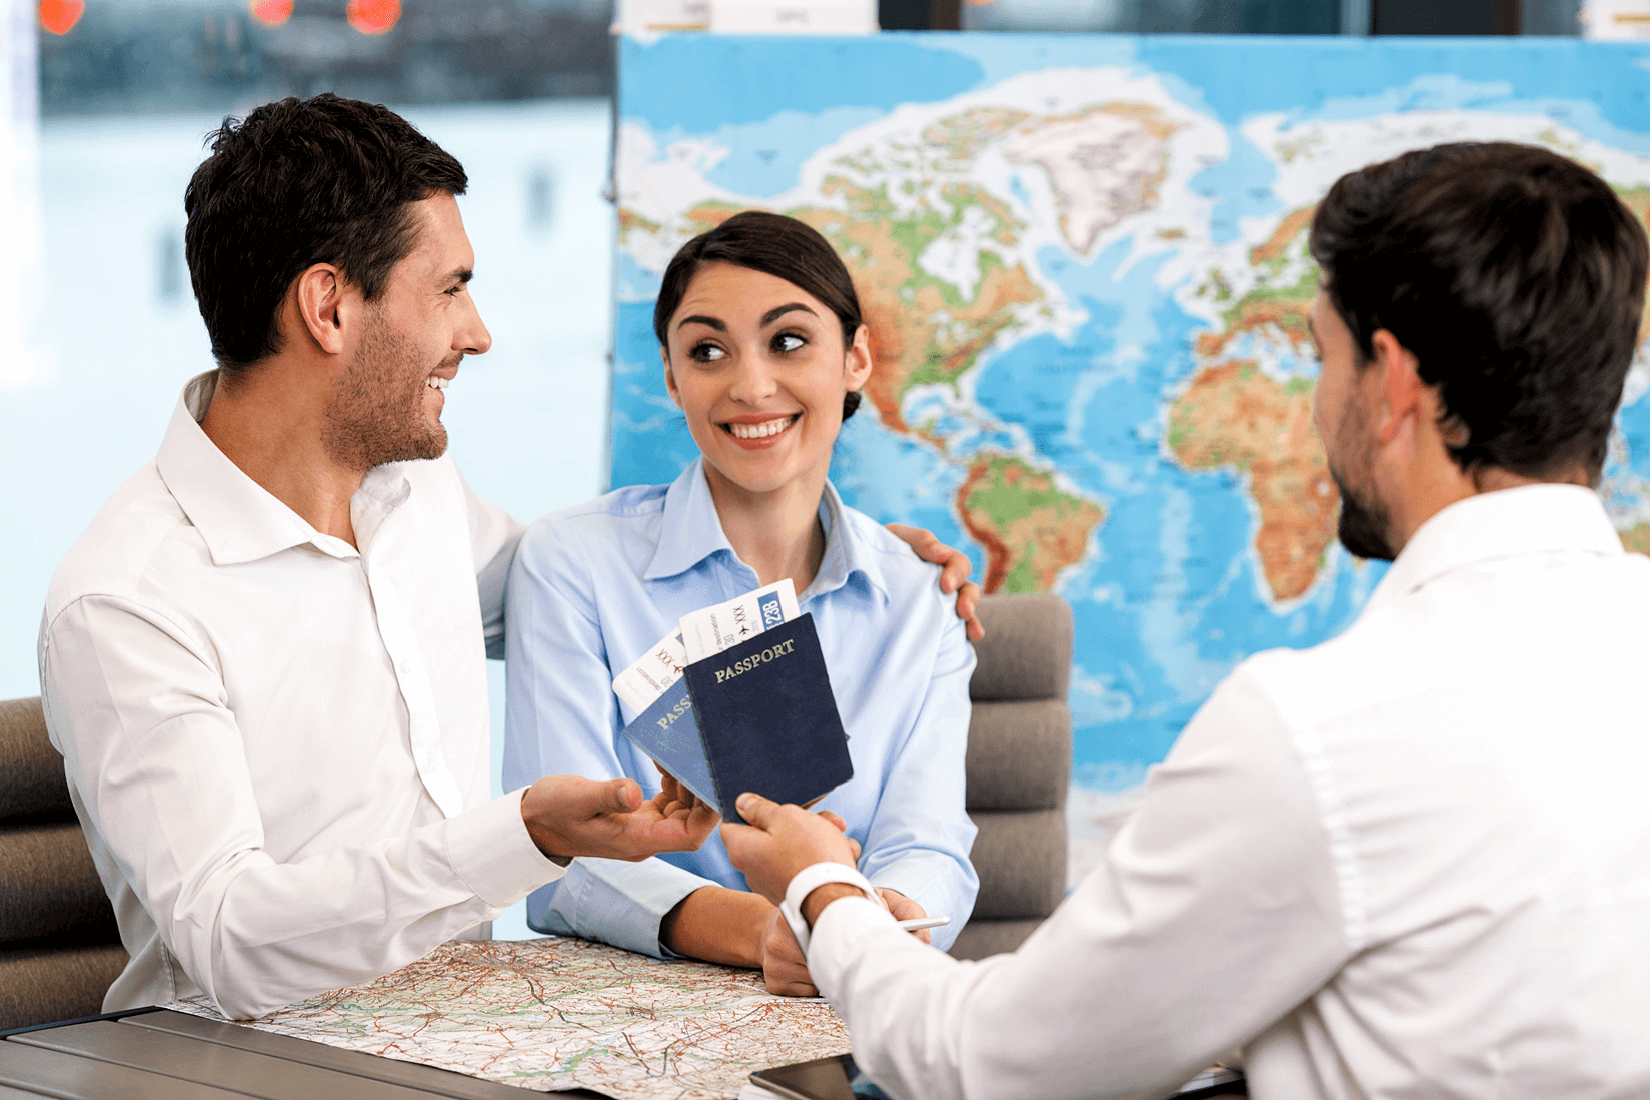 Centre for ISO9000 Travel Agencies